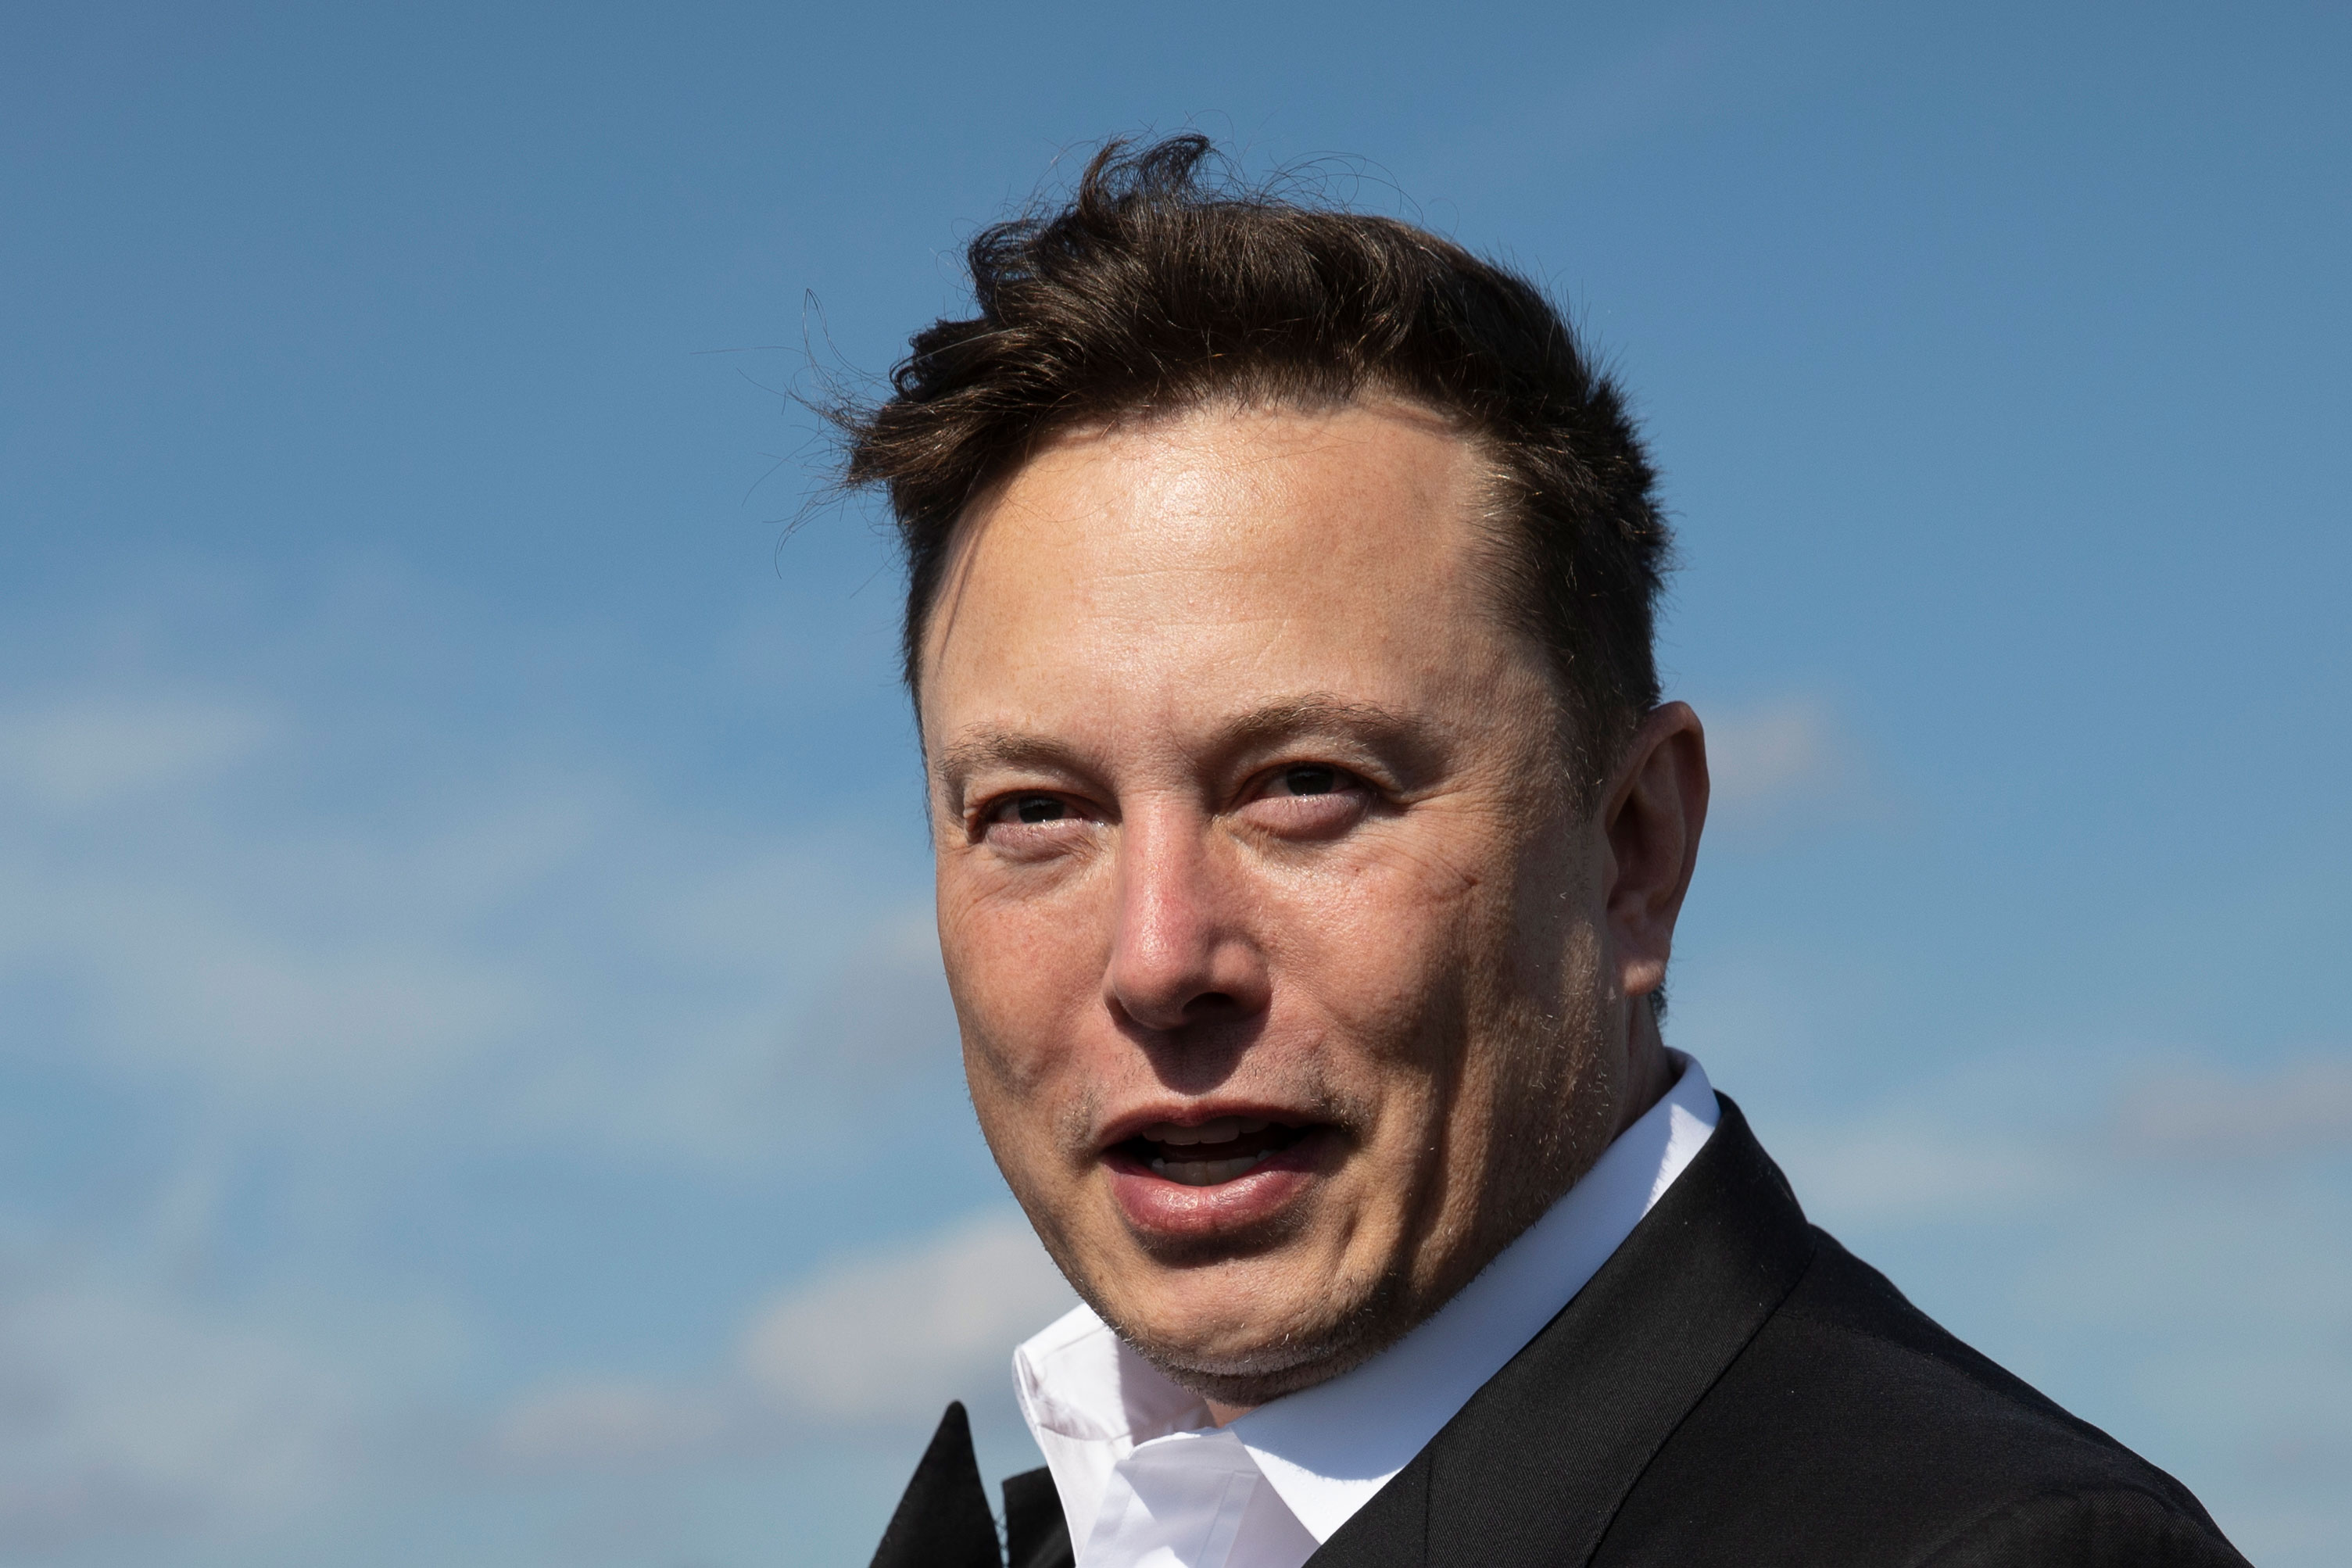 Elon Musk warns employees Tesla's stock could 'get crushed like a soufflé under a sledgehammer'